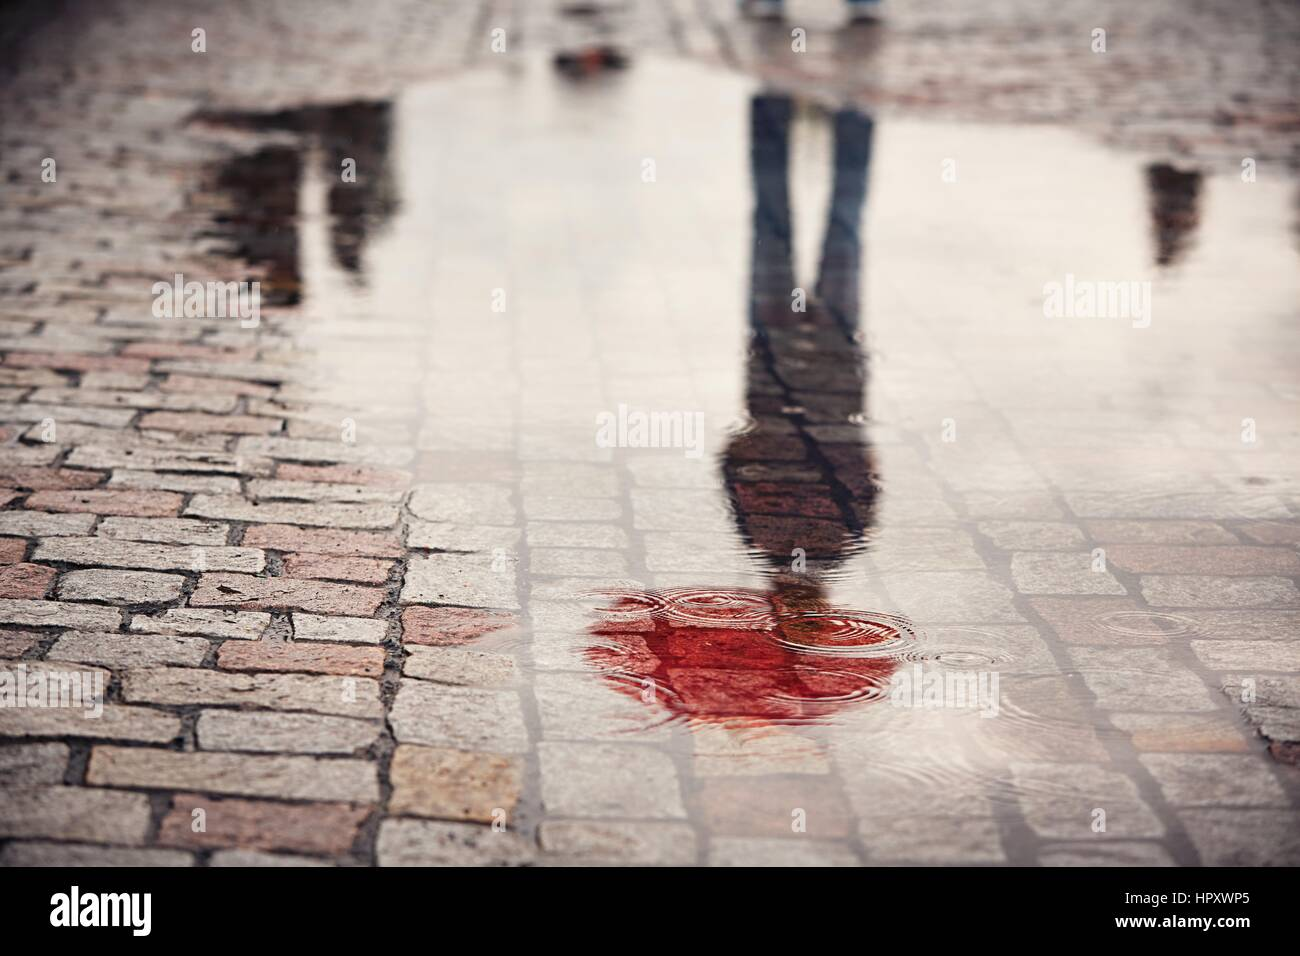 Rainy day. Reflection of young man with red umbrella in puddle on the city street during rain. - Stock Image